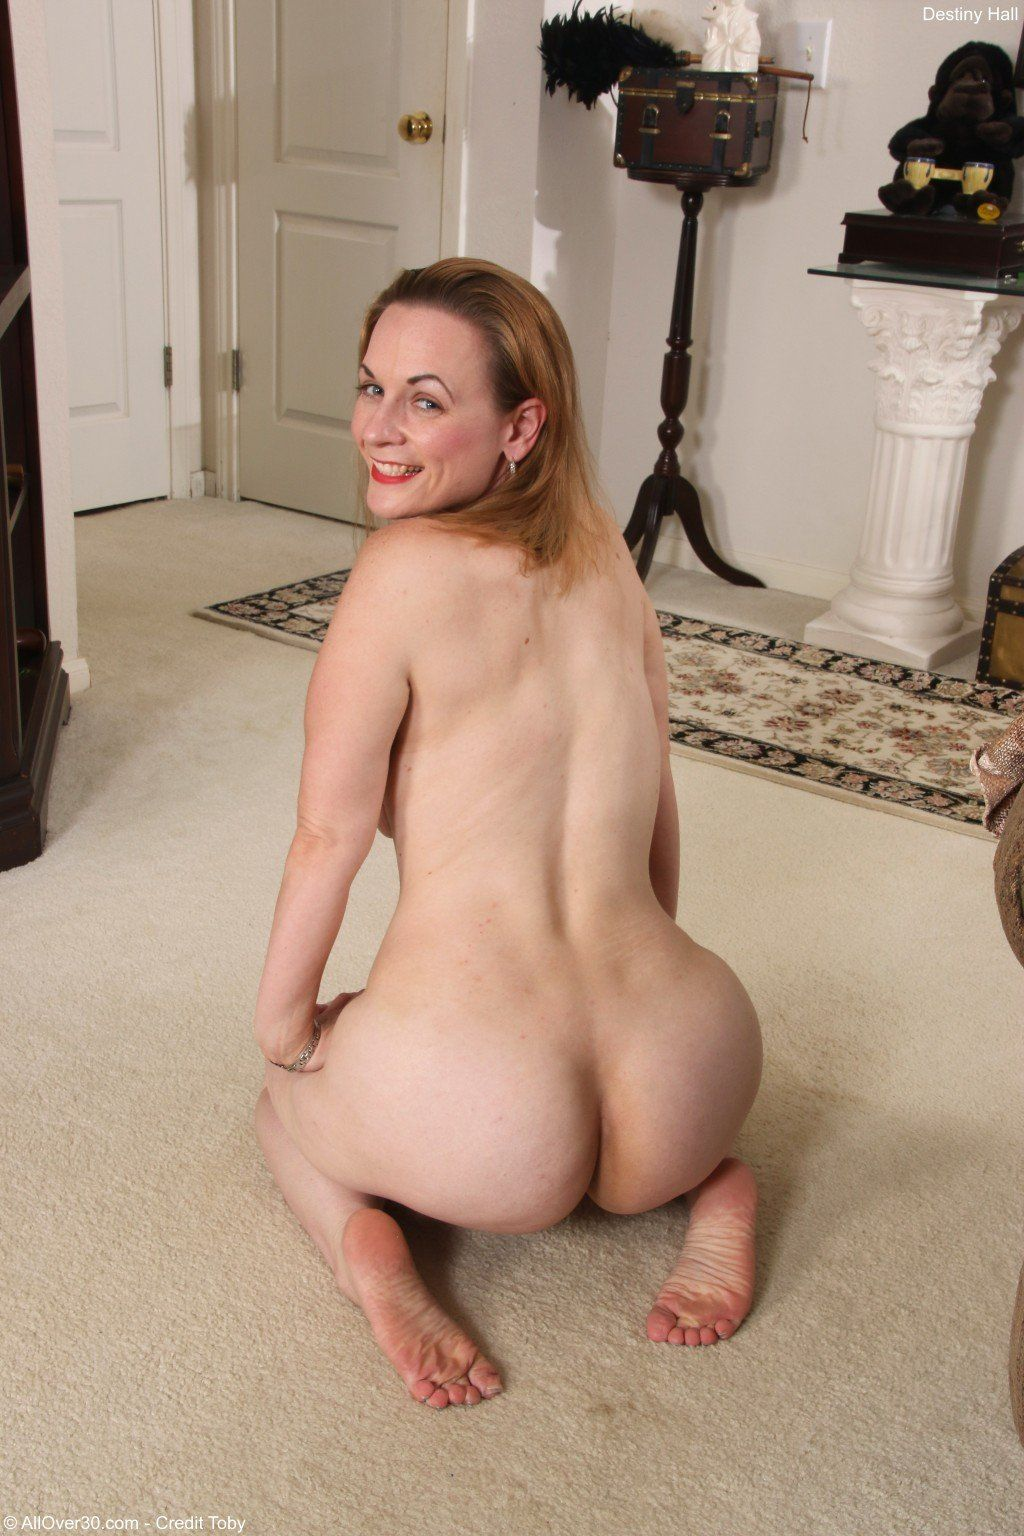 Nudes old saggy quickly thought)))) You